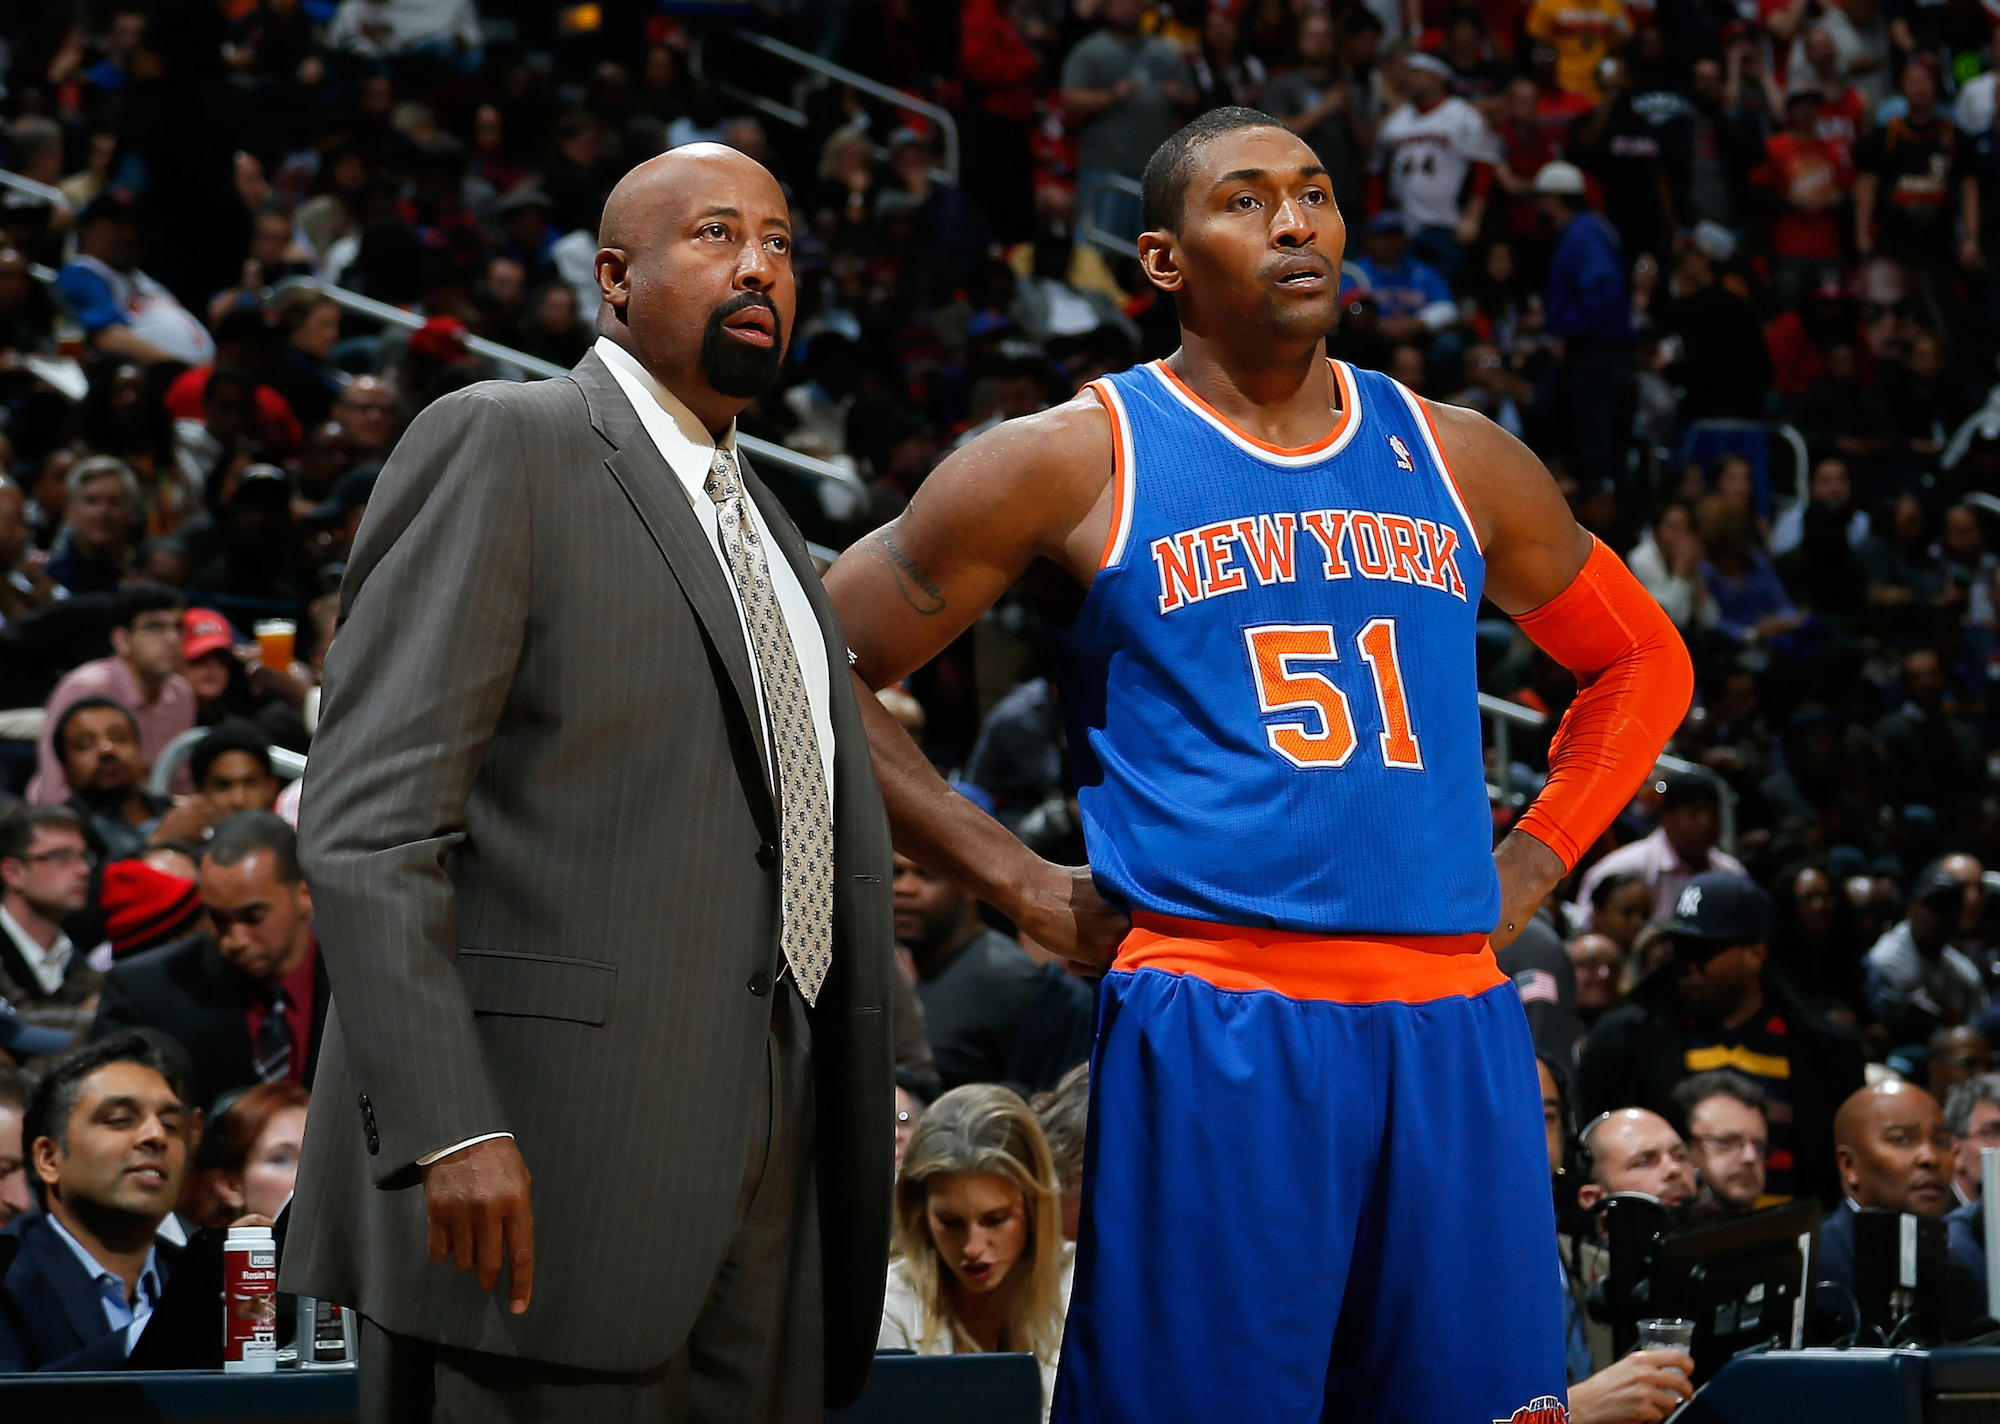 Coaching the New York Knicks would be a dream job for Metta Sandiford-Artest.